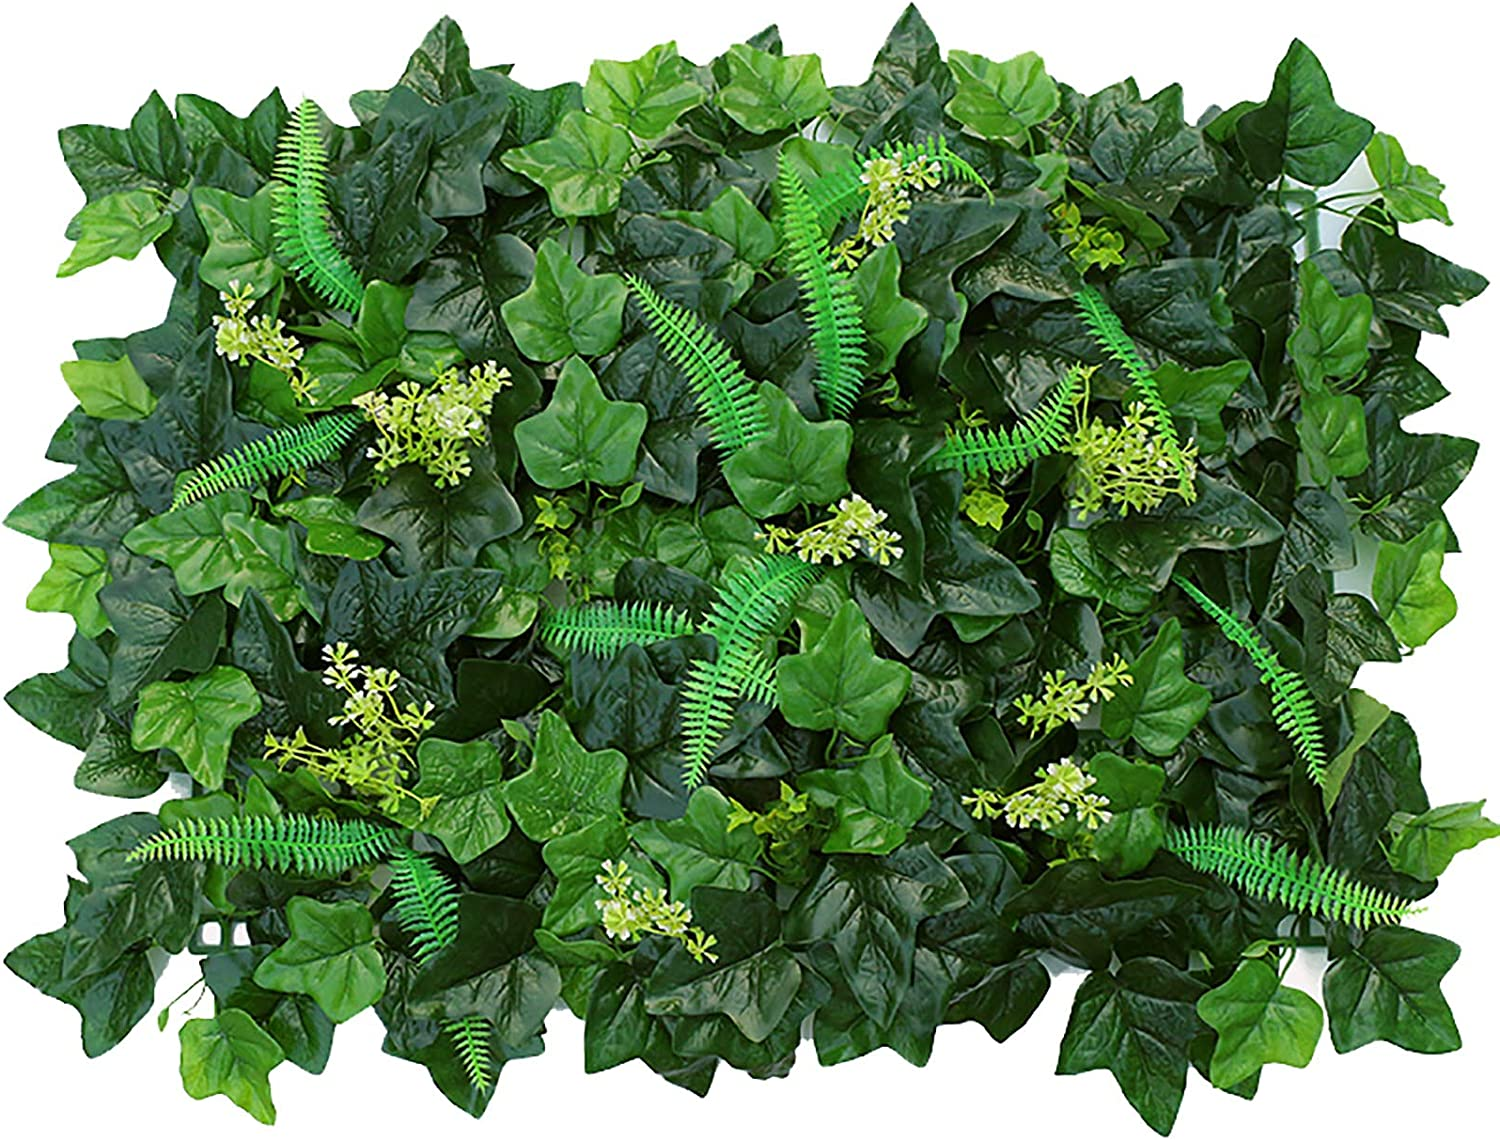 40X60CM Green Plant Outlet ☆ Free Shipping 5 ☆ popular Wall Decoratio Creeper Simulation